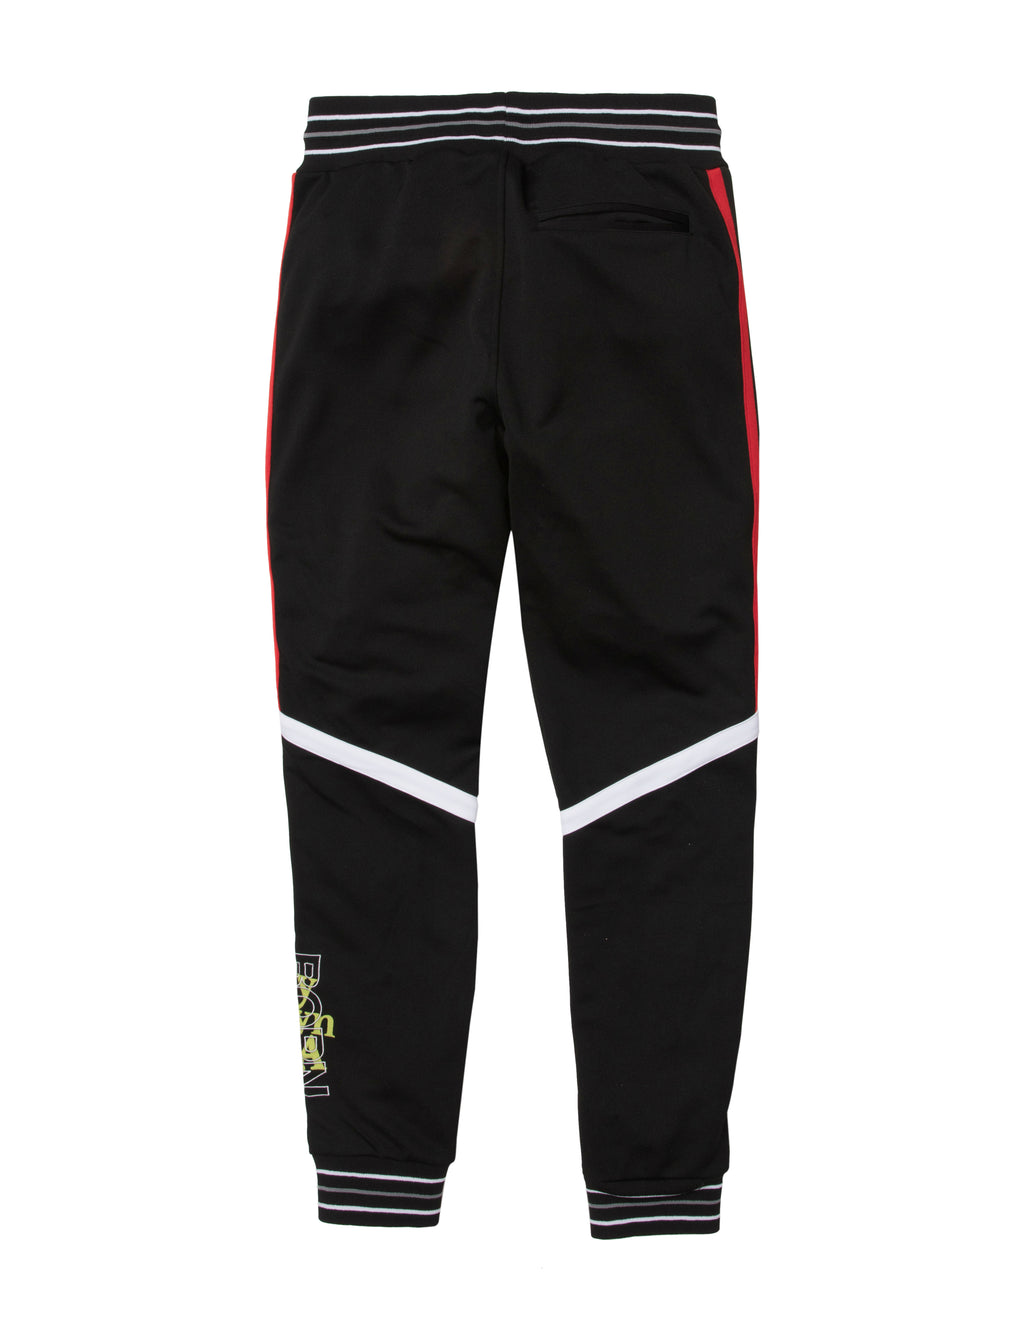 Guess Who Track Pant - Big & Tall